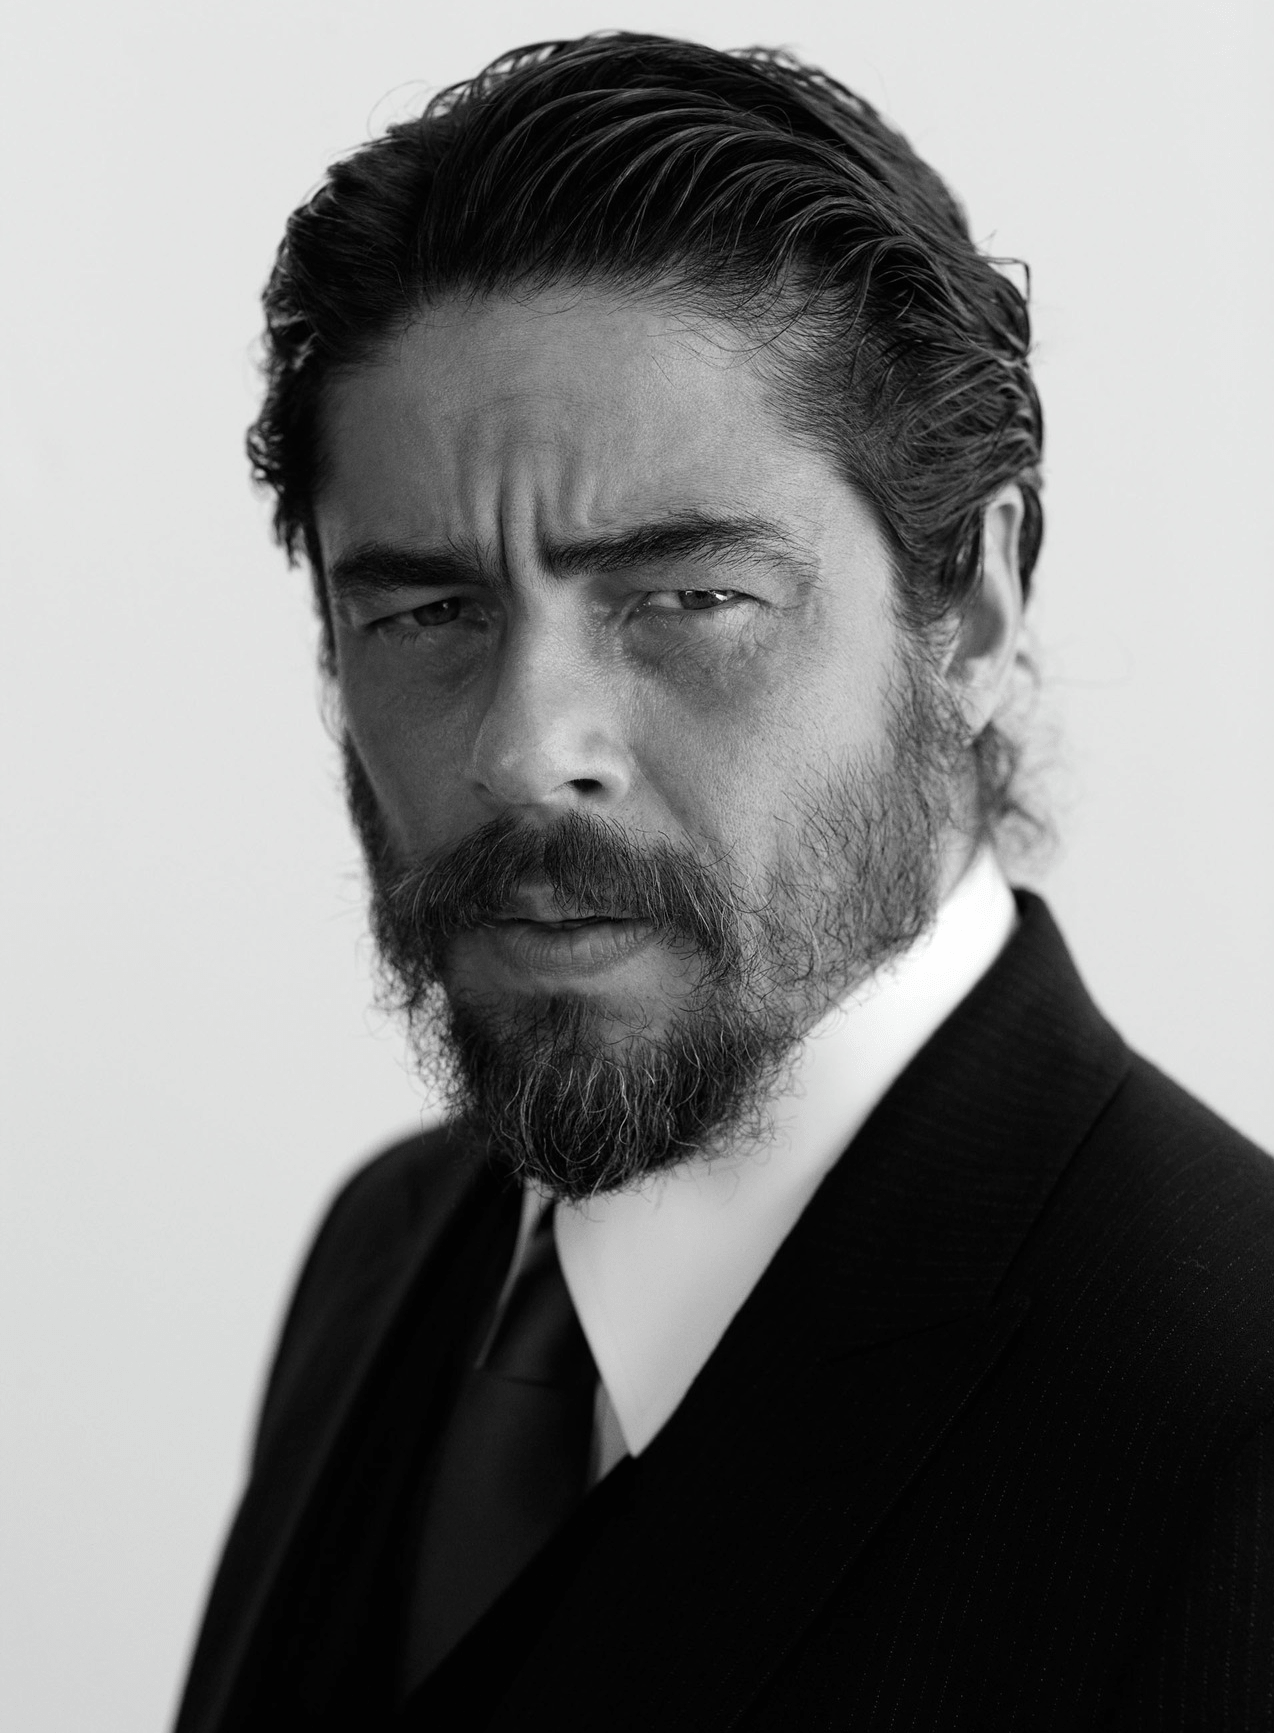 Benicio Del Toro For mobile